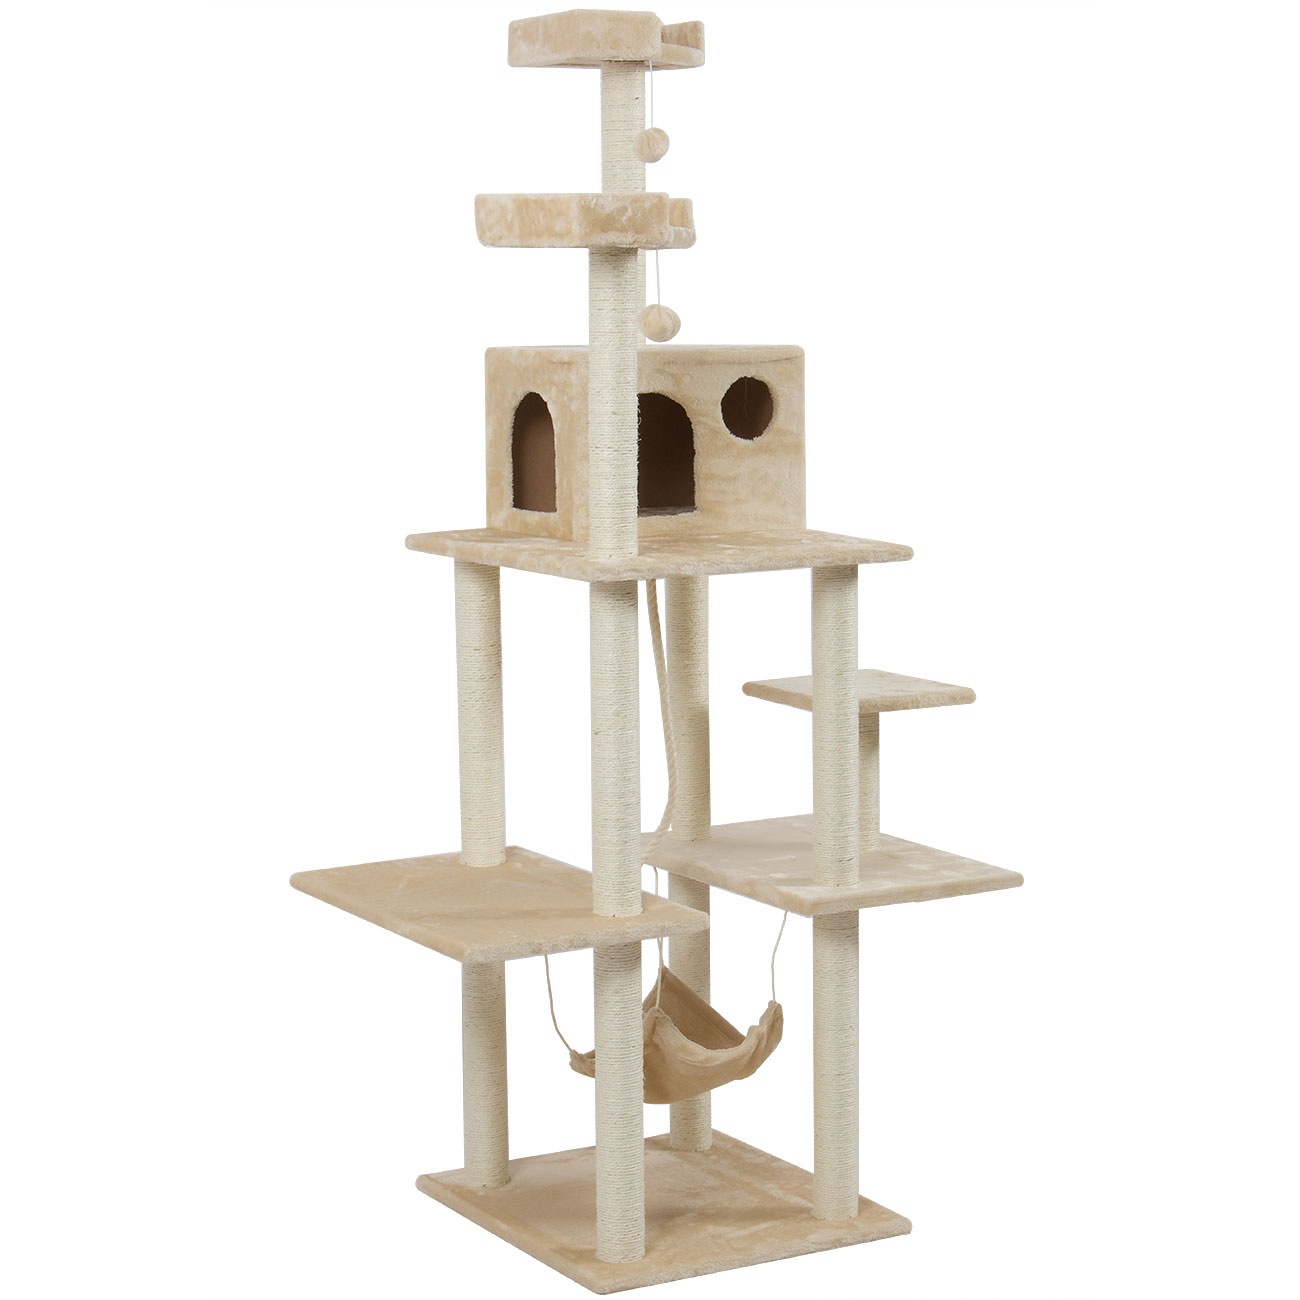 72 cat tree play house tower condo furniture scratch post. Black Bedroom Furniture Sets. Home Design Ideas